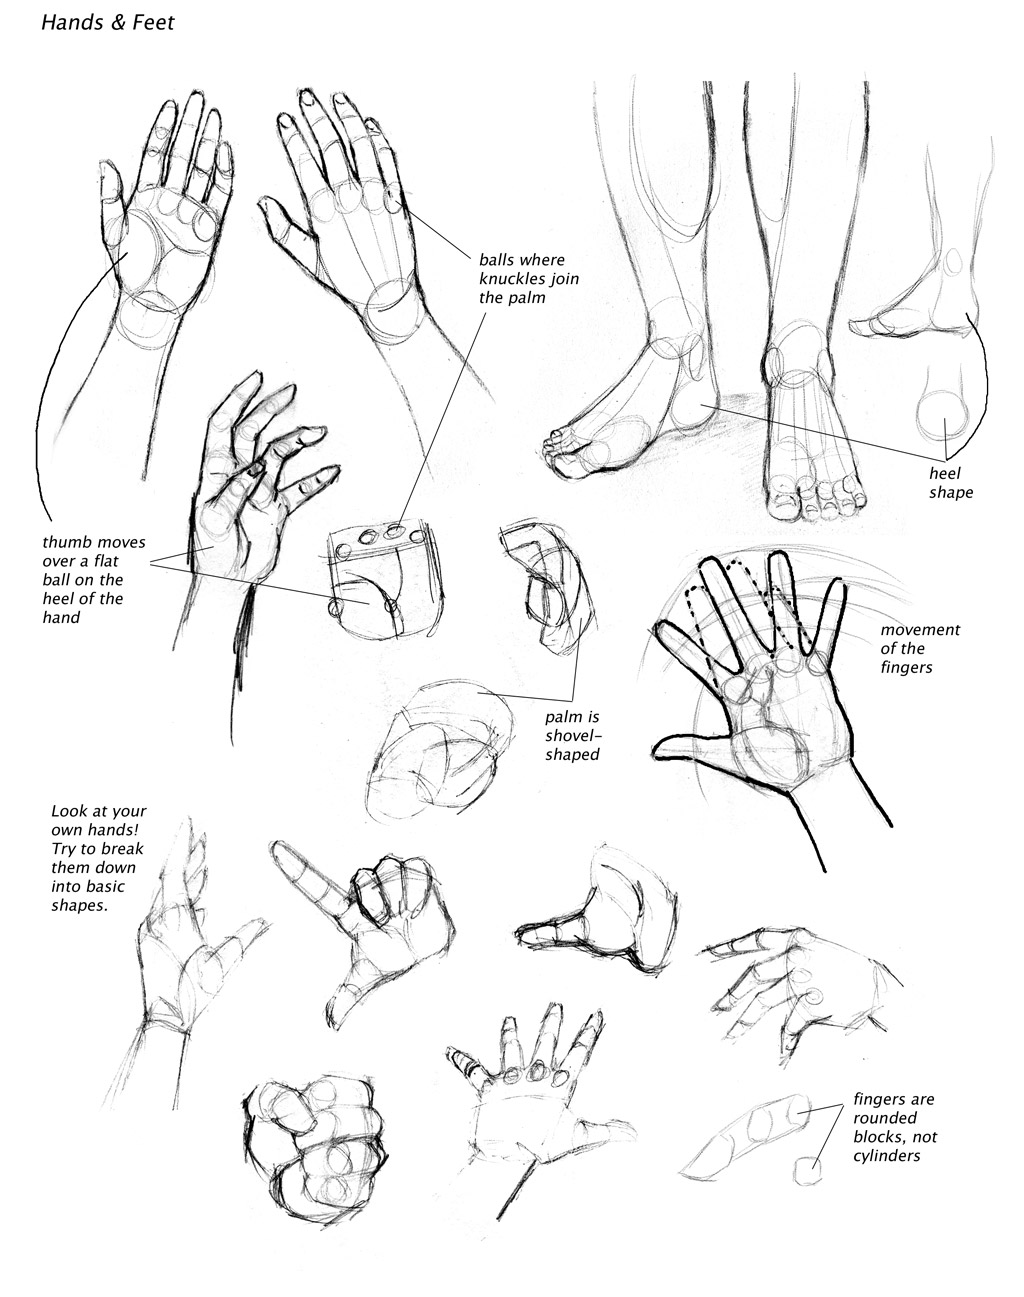 Some tips on hands and feet